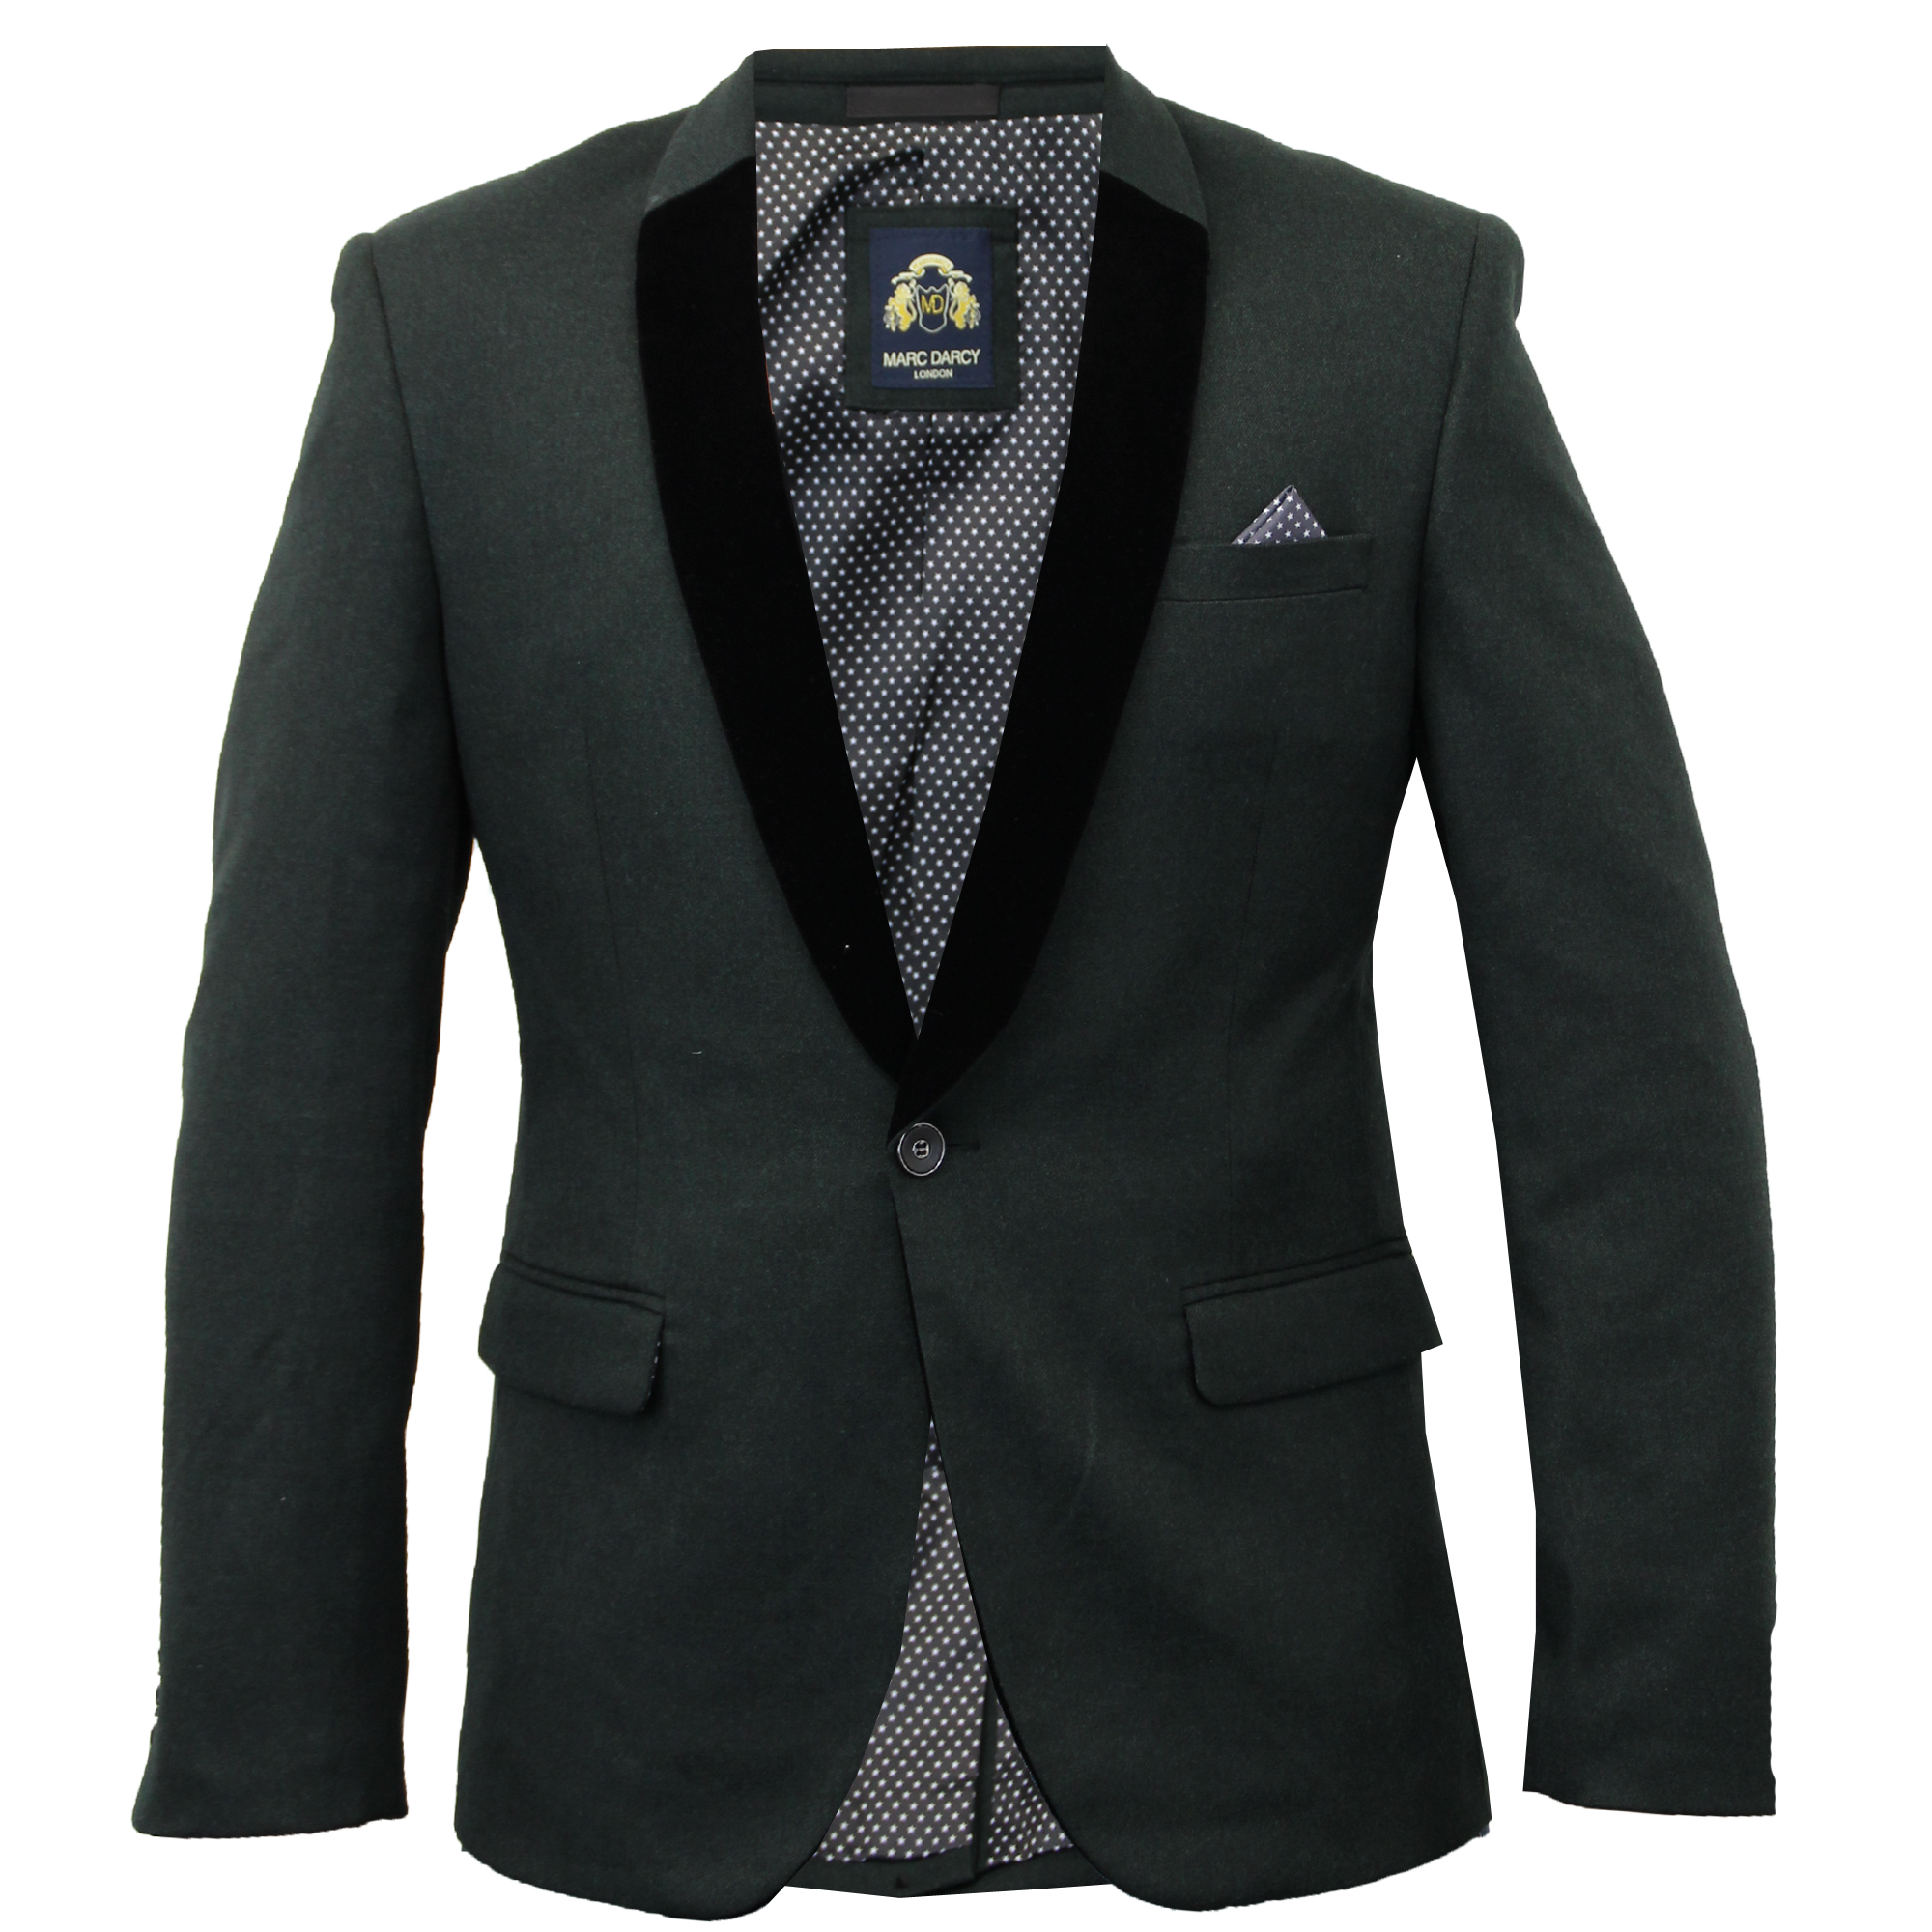 Buy low price, high quality men's velvet jacket coats with worldwide shipping on roeprocjfc.ga